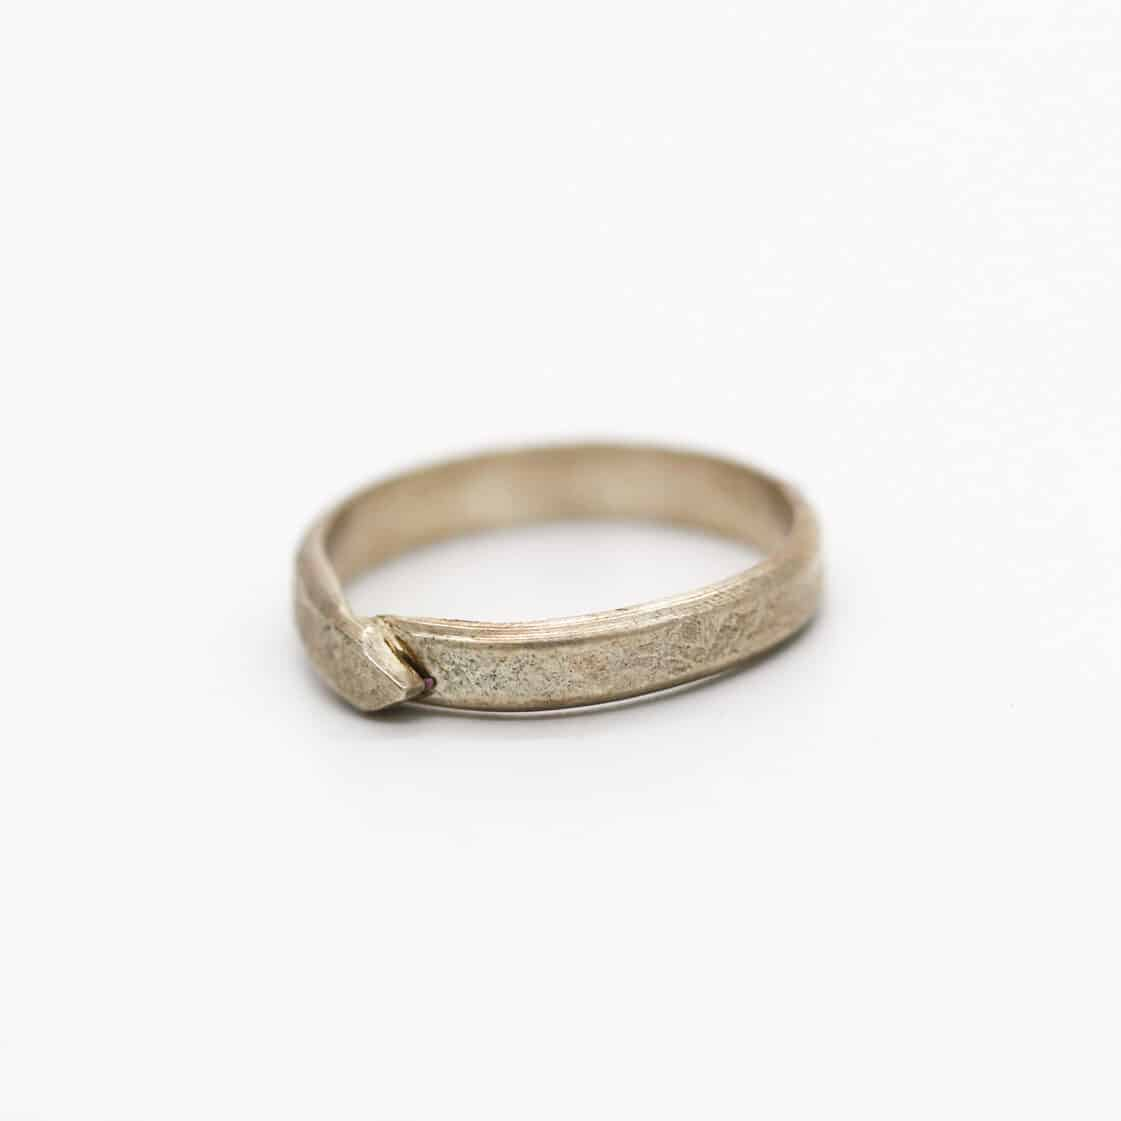 Roller Textured Silver Ring Llery By Of That Ilk